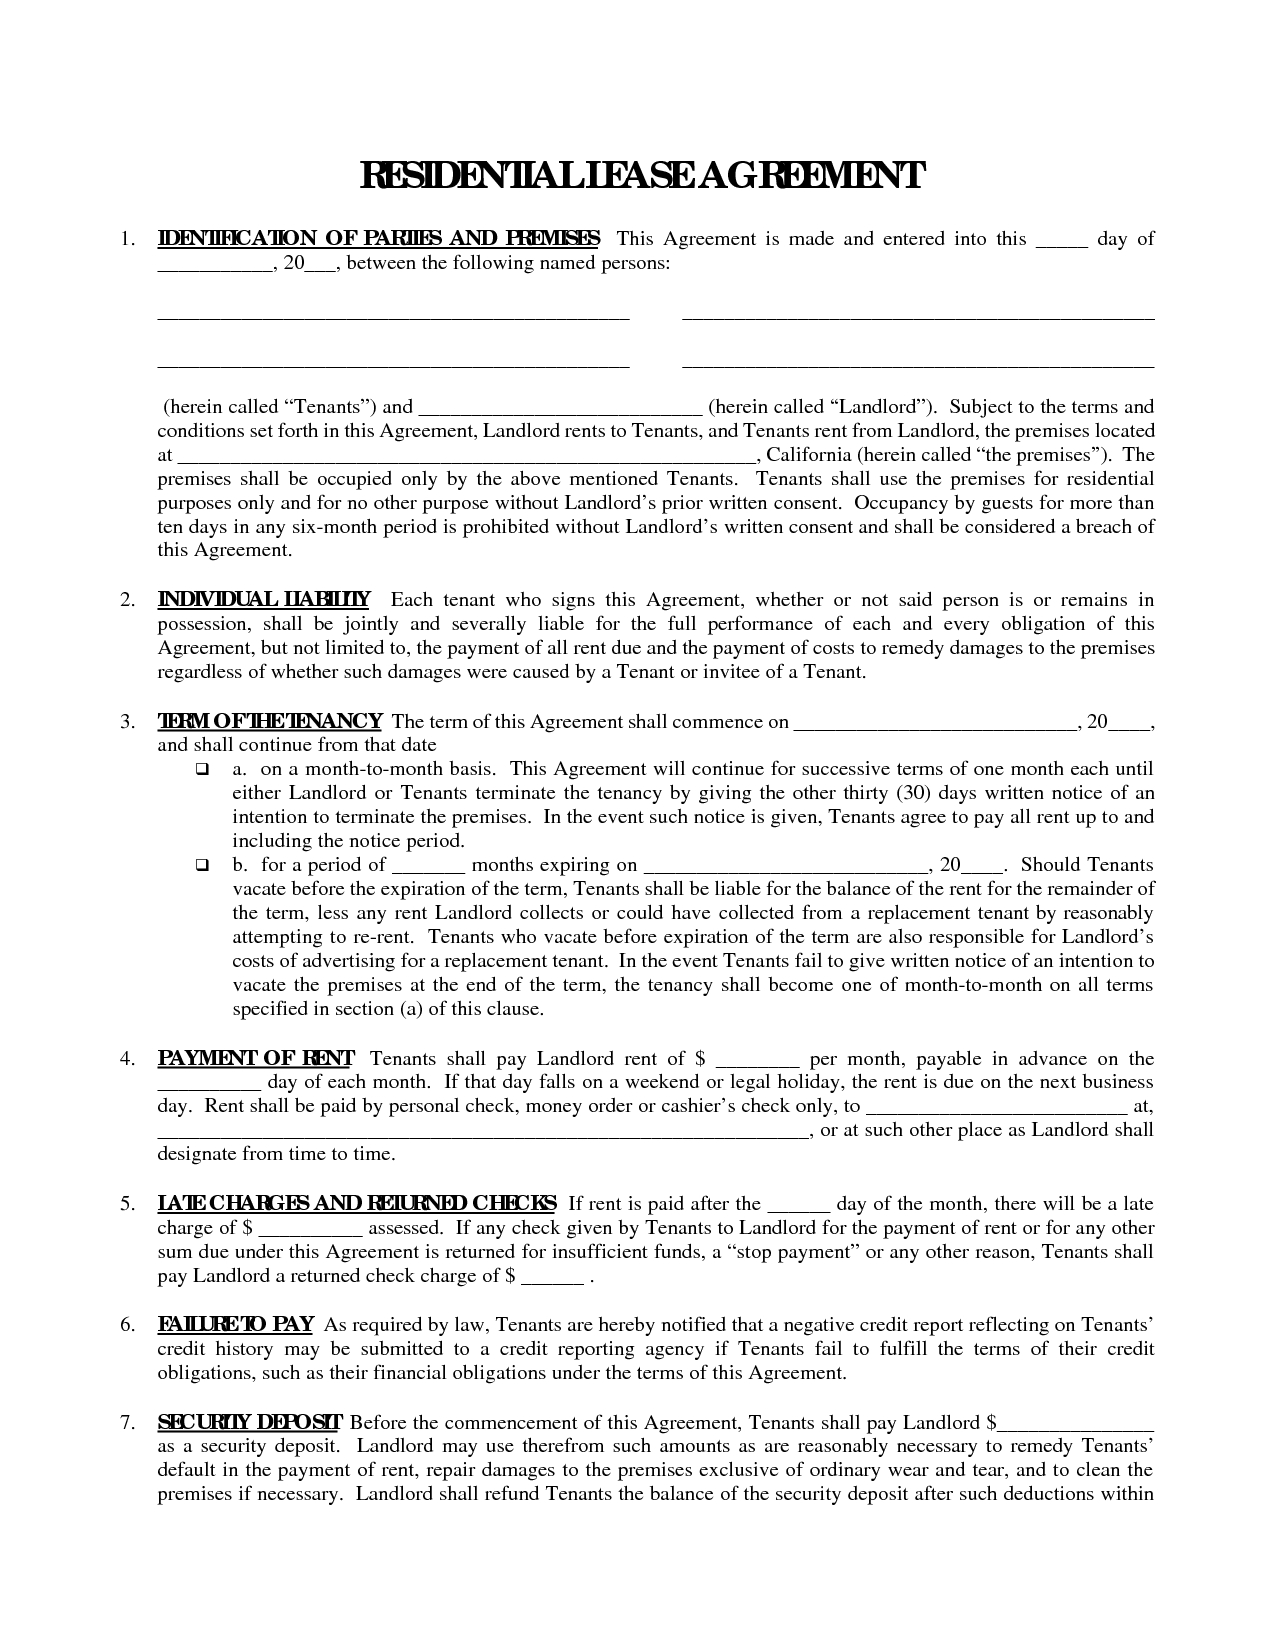 Printable Residential Free House Lease Agreement | Residential Lease - Free Printable Landlord Forms